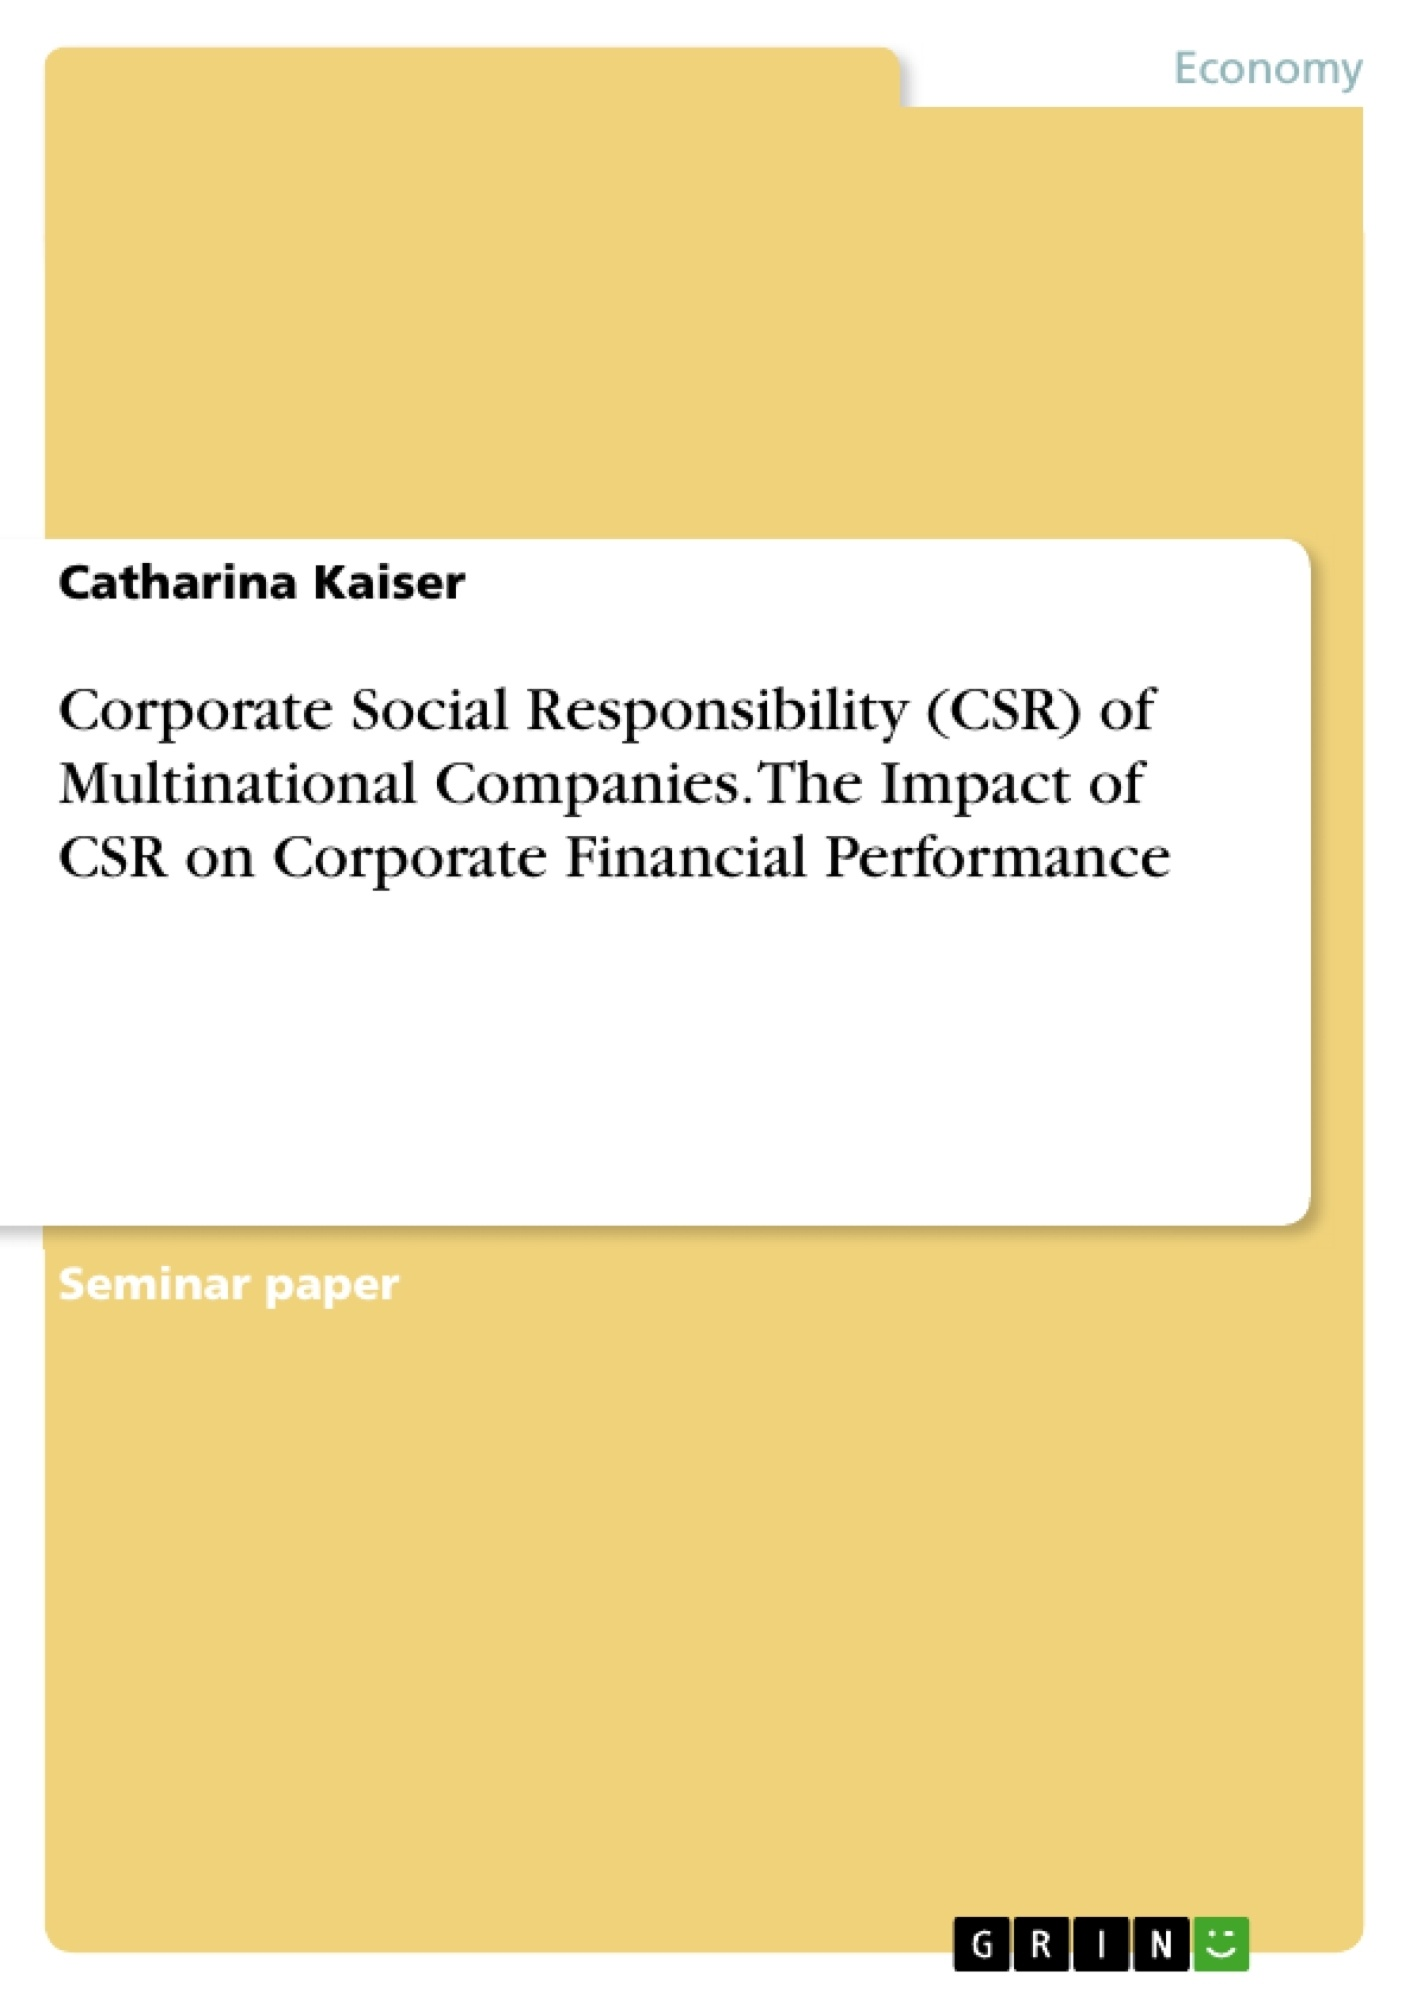 Corporate Governance and Social Responsibility&nbspEssay